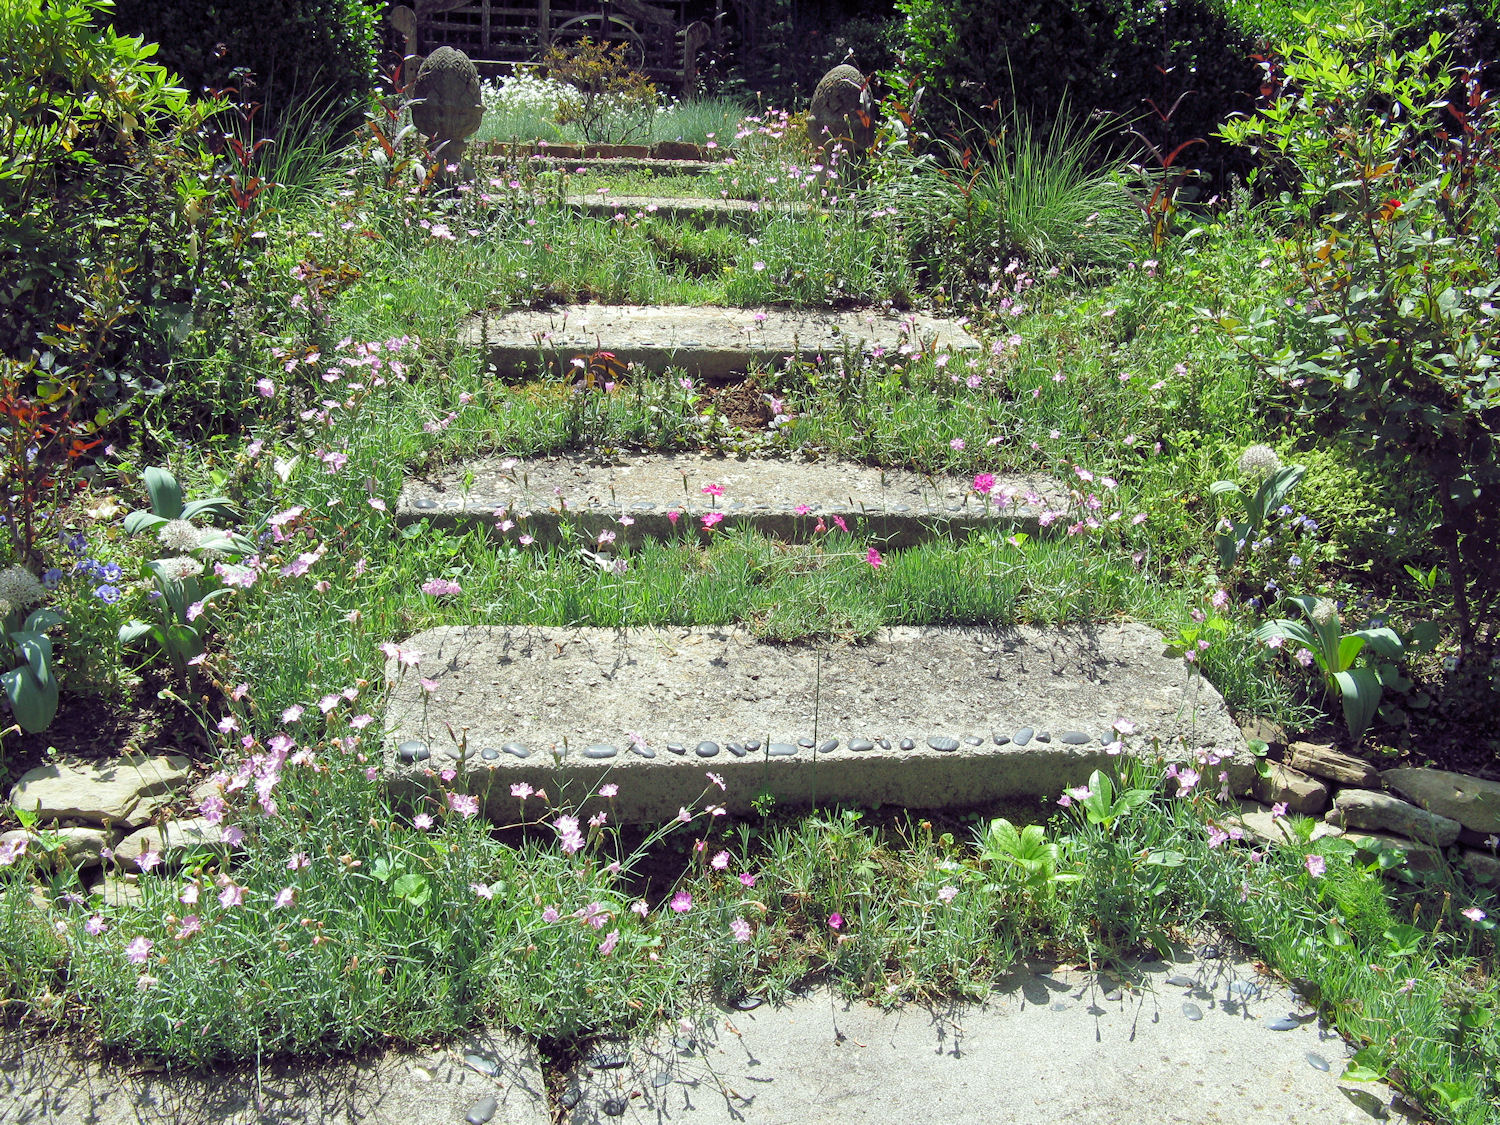 How to plant ground cover between pavers - I Love The Dianthus And Other Small Plants Growing Around These Concrete Paver Steps Photo